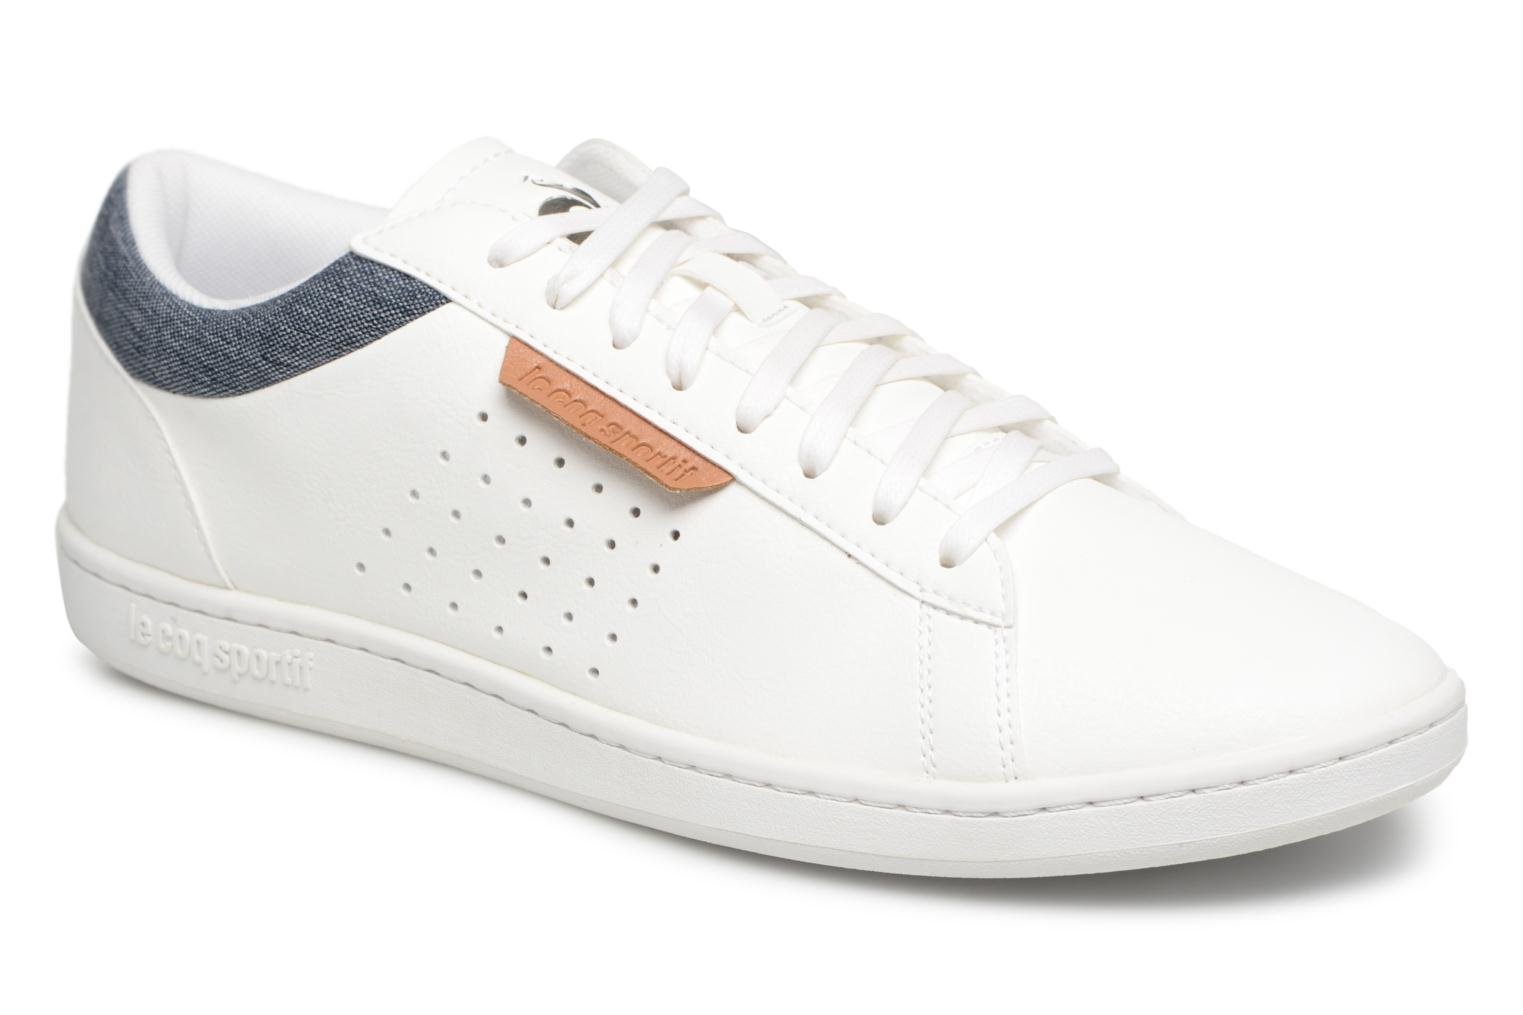 Sneakers Courtset Craft by Le Coq Sportif